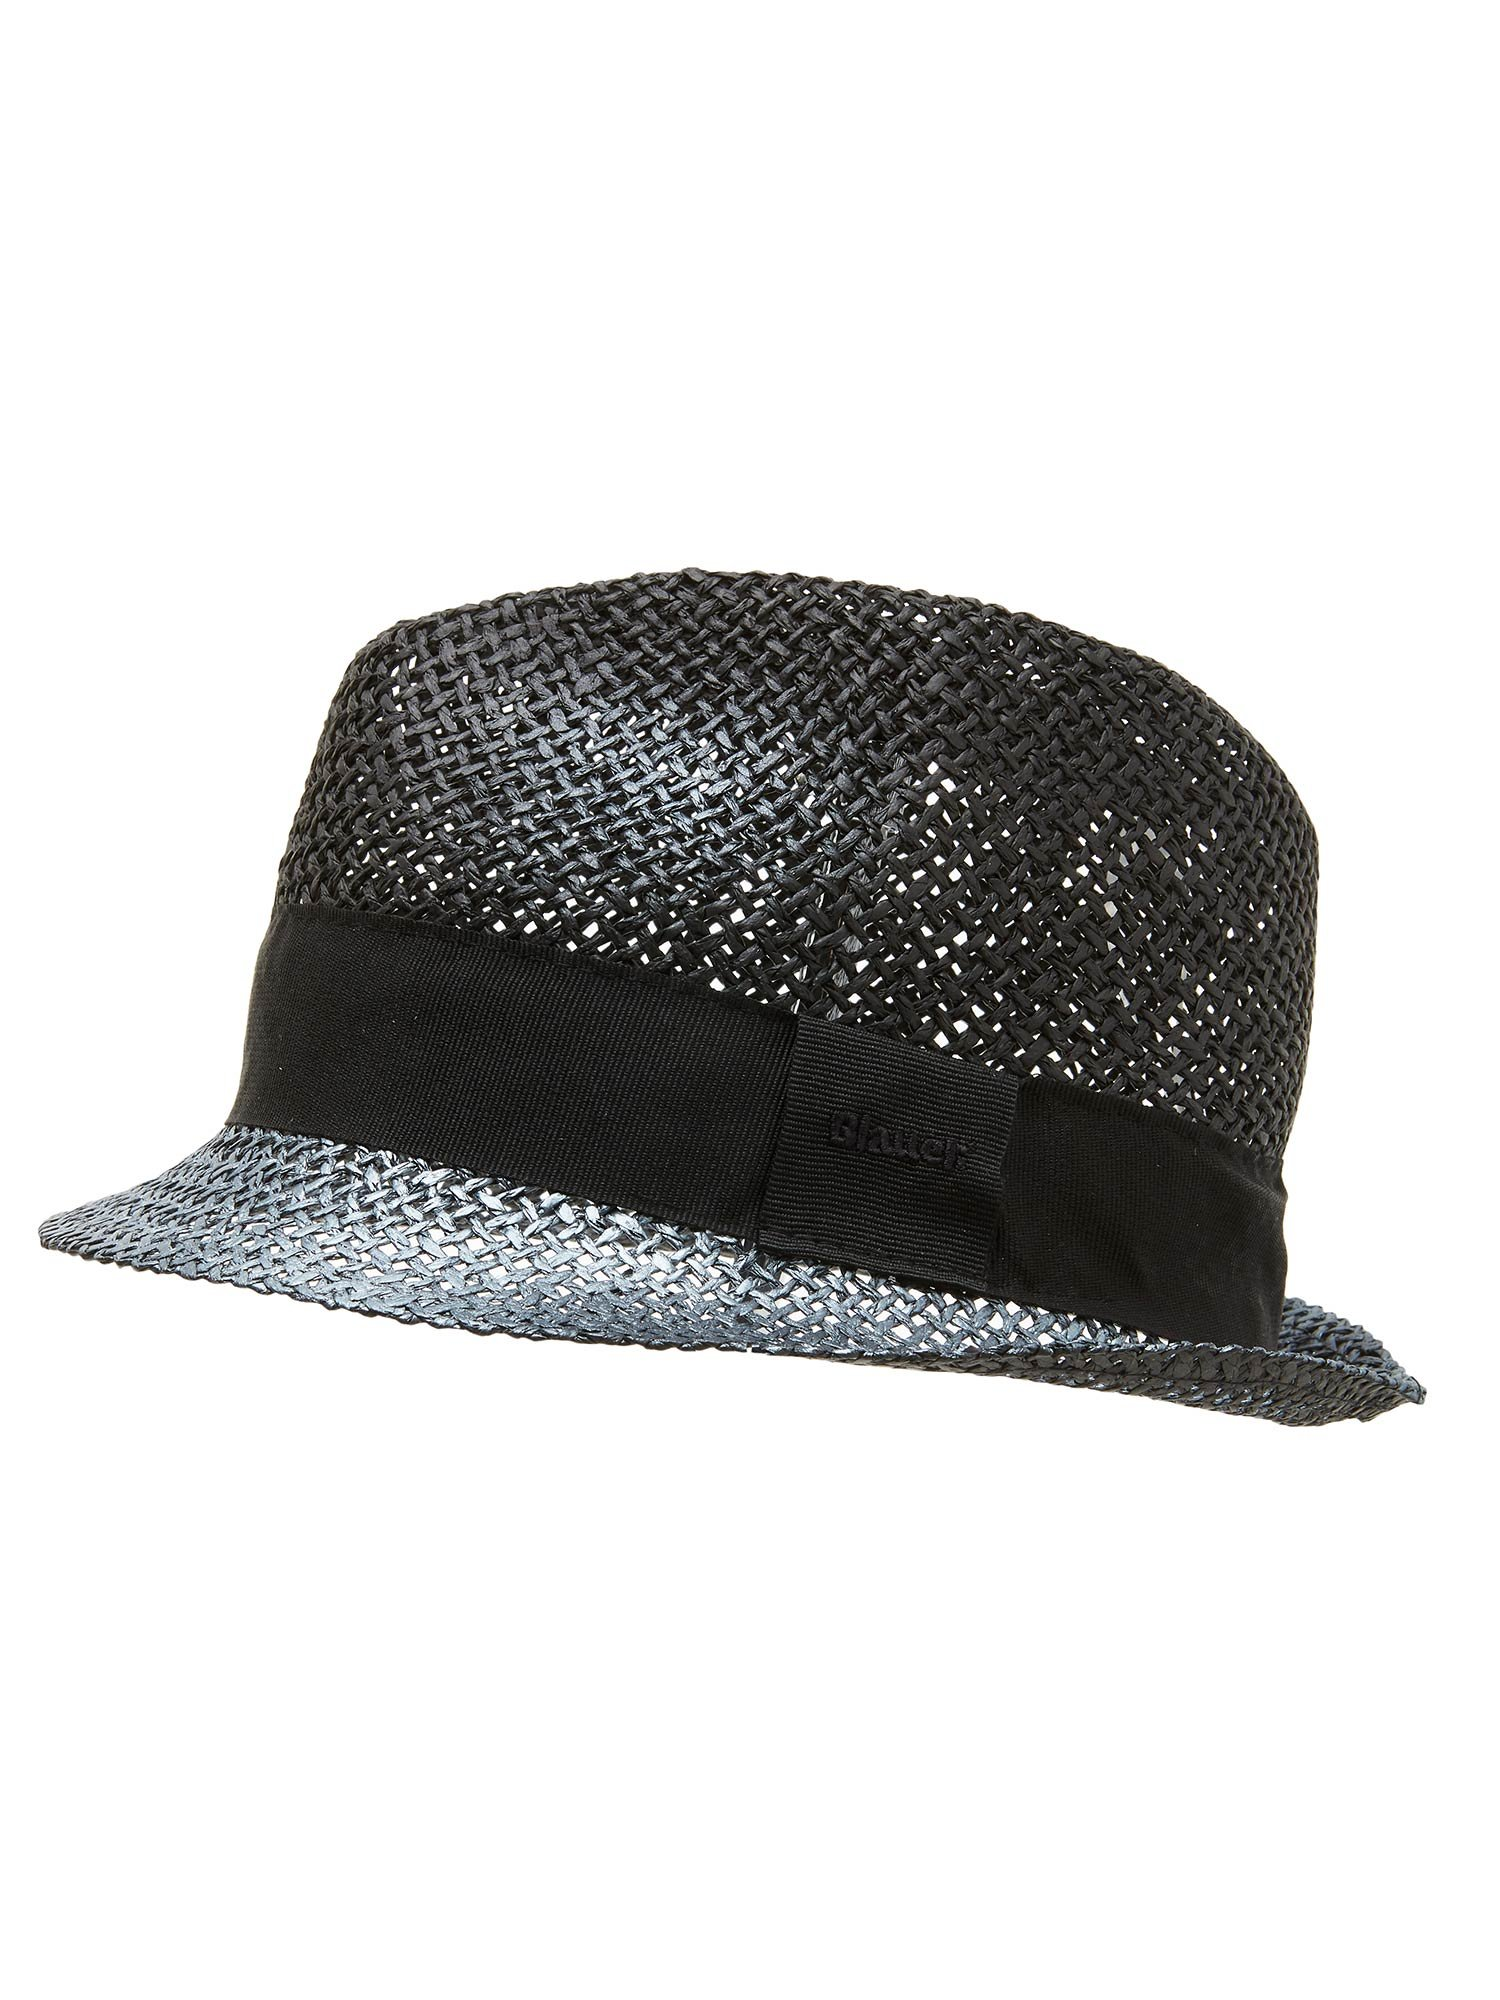 TRILBY HAT IN PAPER FABRIC - Blauer